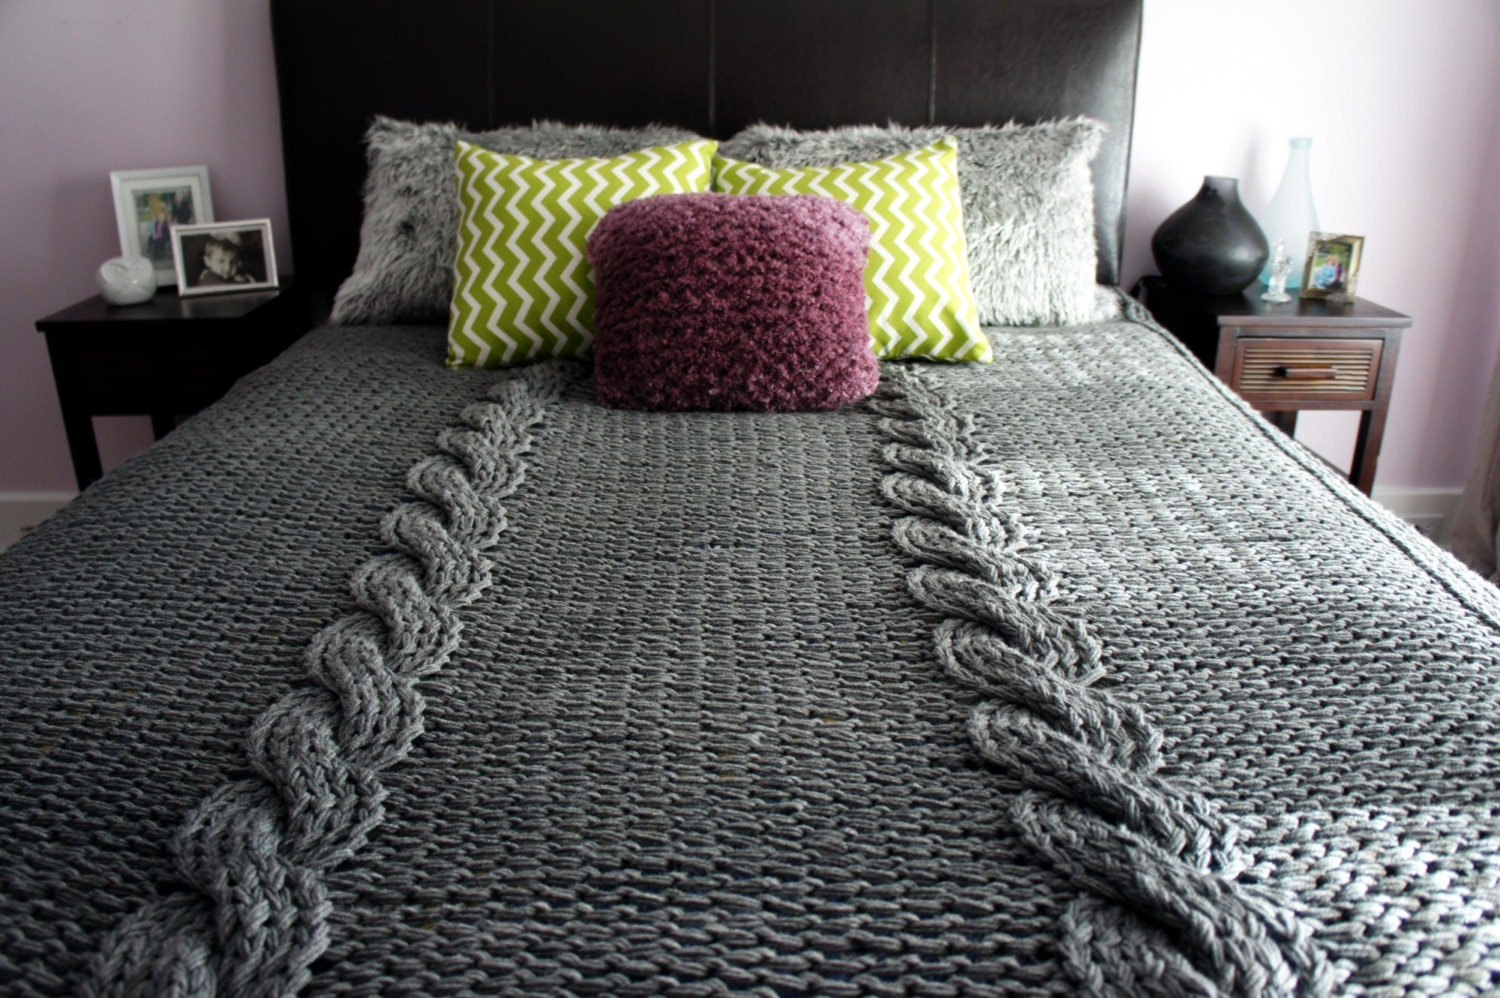 Knit Throw Knit Blanket Cable Blanket Bed Cover Home